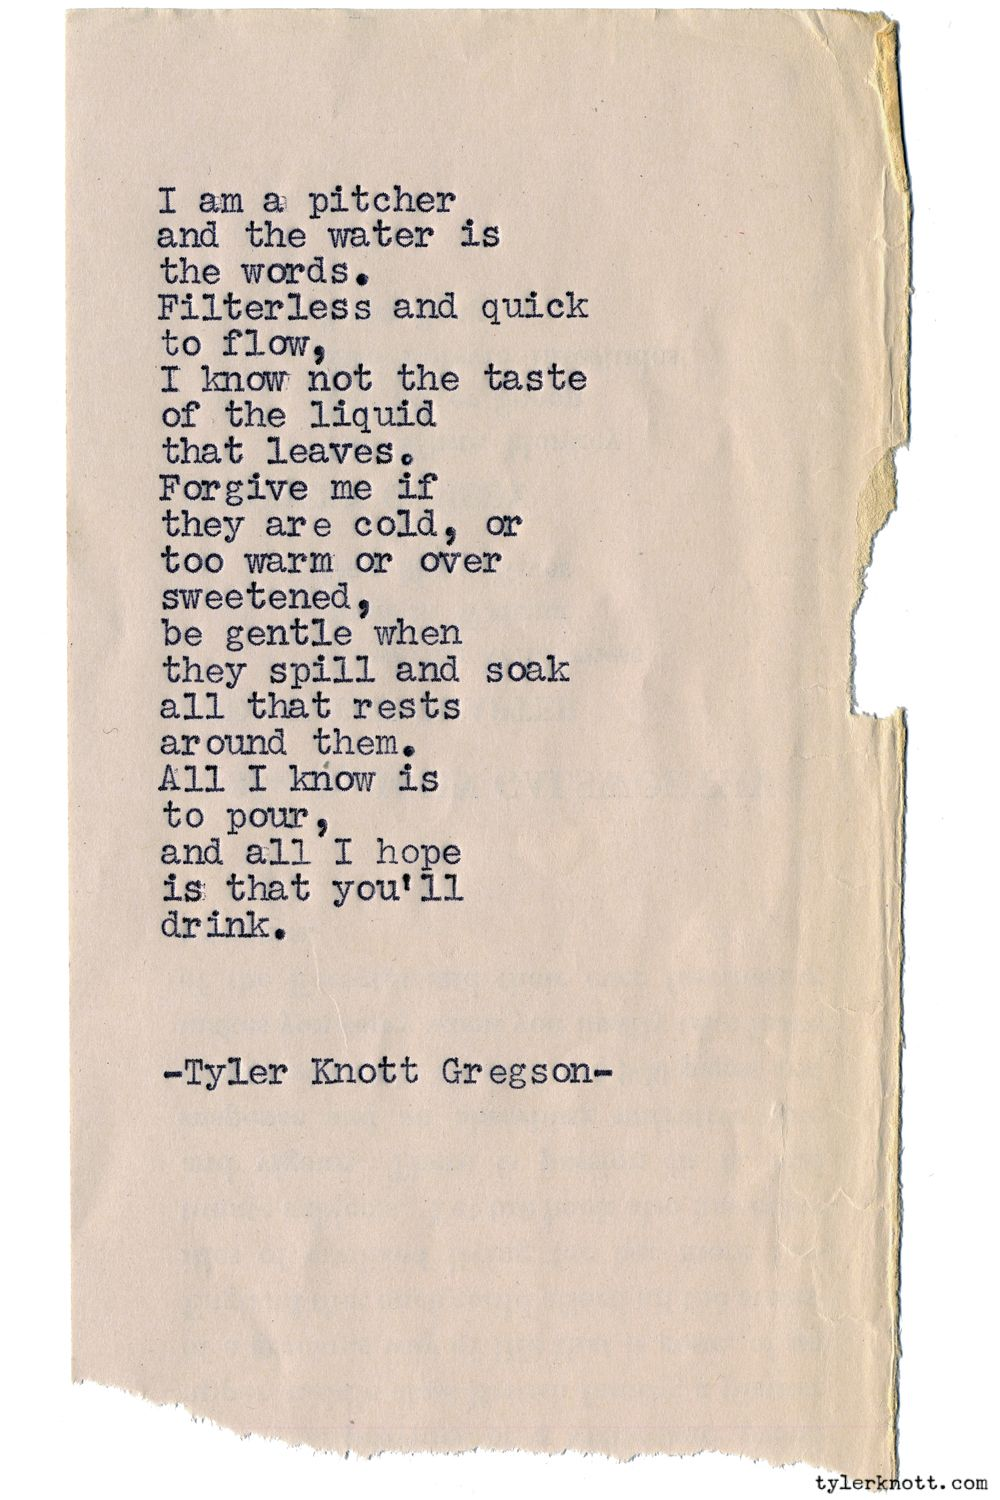 Typewriter Series 1230 By Tyler Knott Gregson Chasers Of The